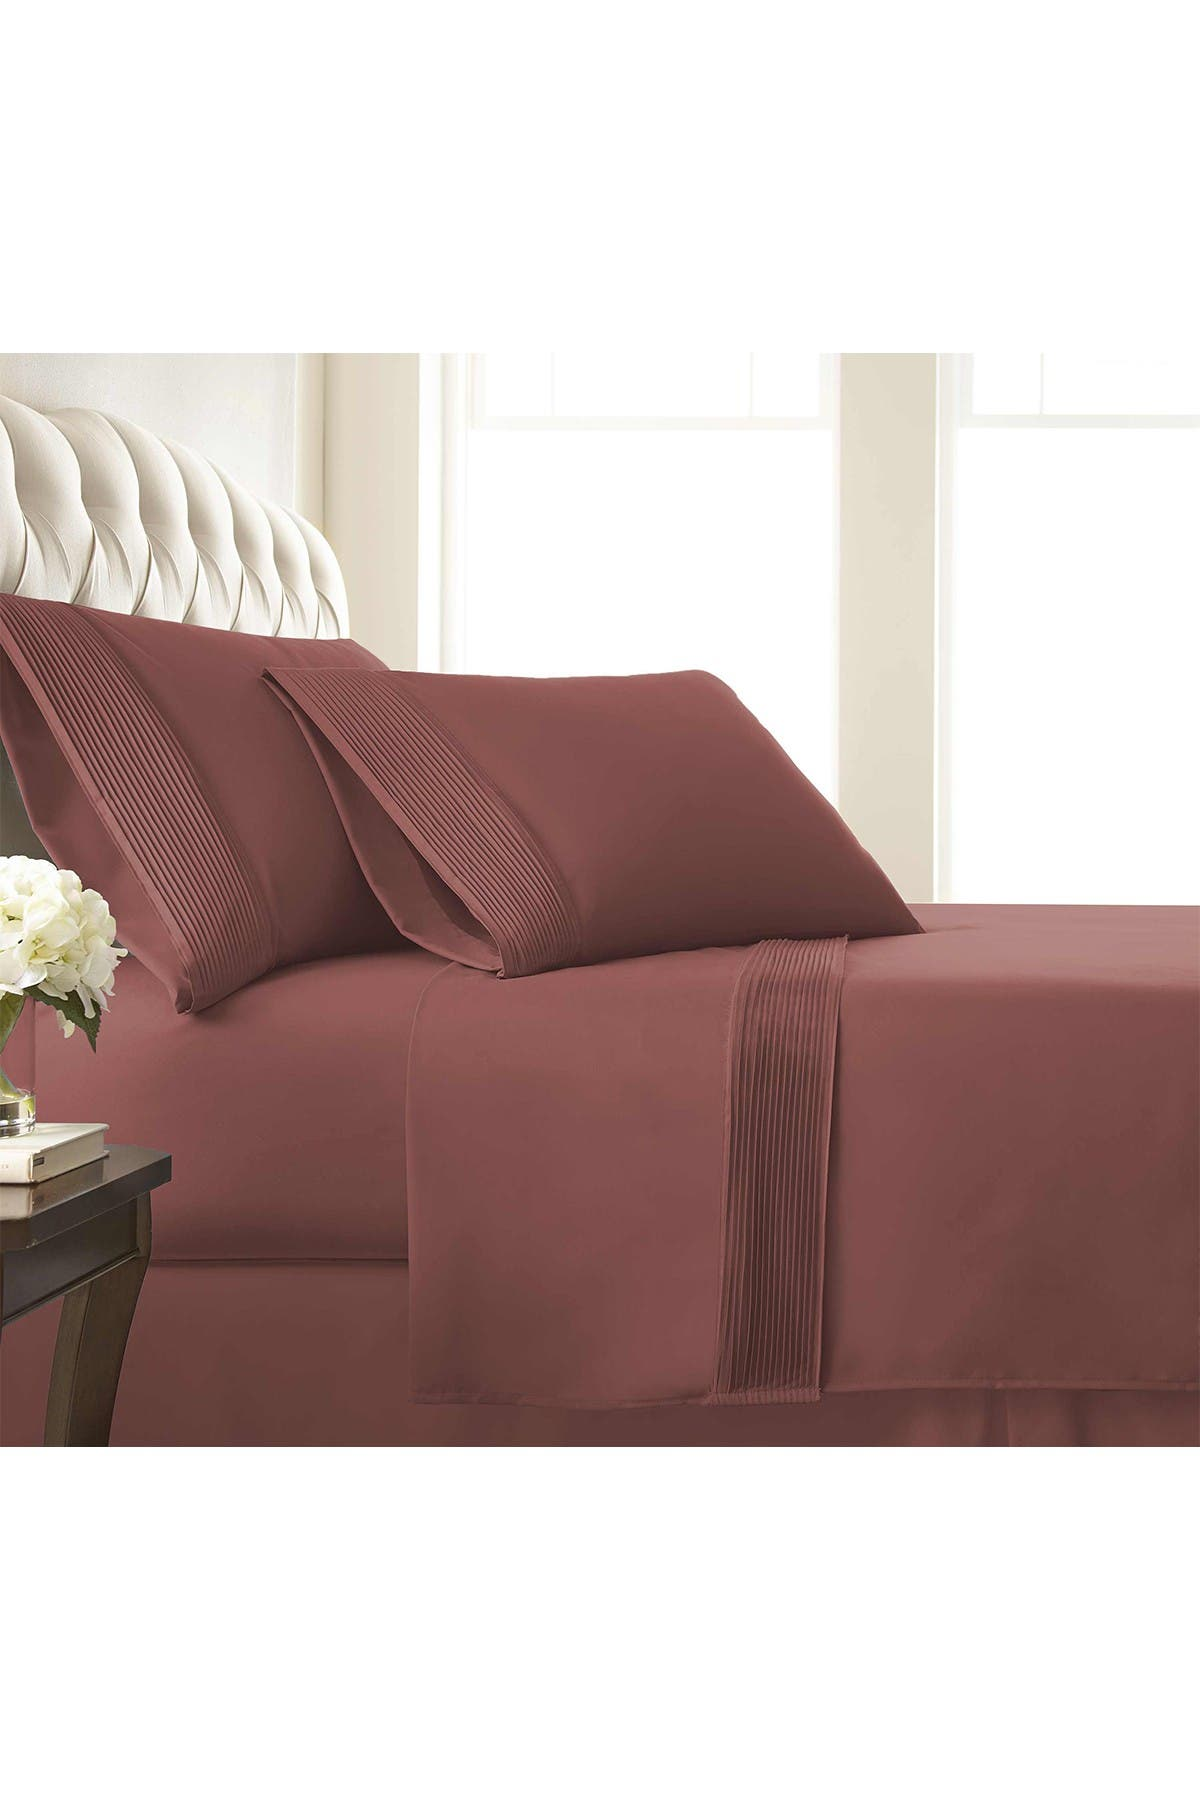 Image of SOUTHSHORE FINE LINENS King Sized Premium Collection Double Brushed Extra Deep Pocket Pleated Sheet Set - Marsala